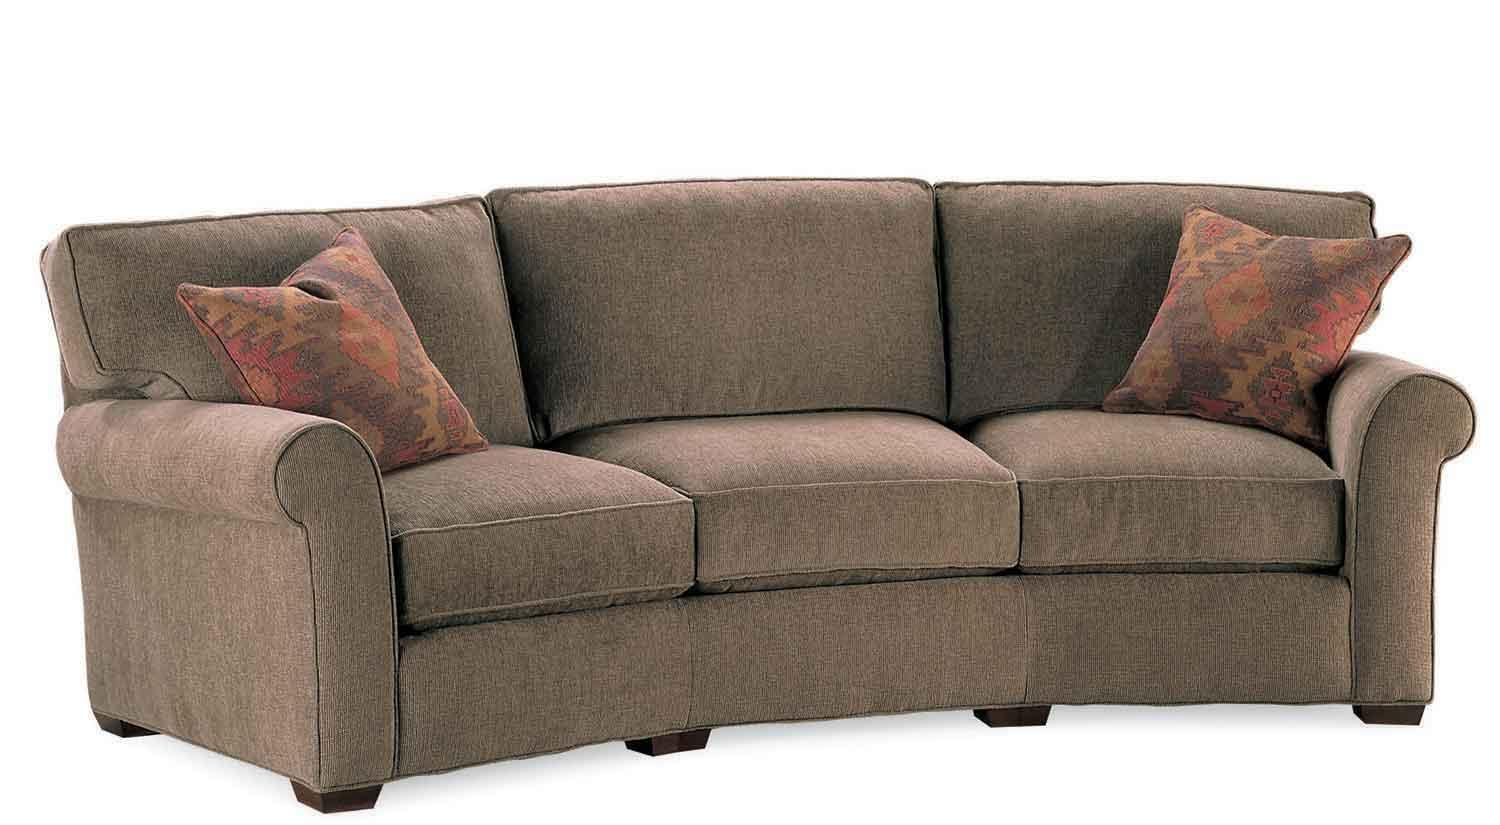 Circle Furniture – Taylor Wedge Sofa | Wedge Couches Ma | Circle Regarding Circle Sofas (Image 7 of 20)